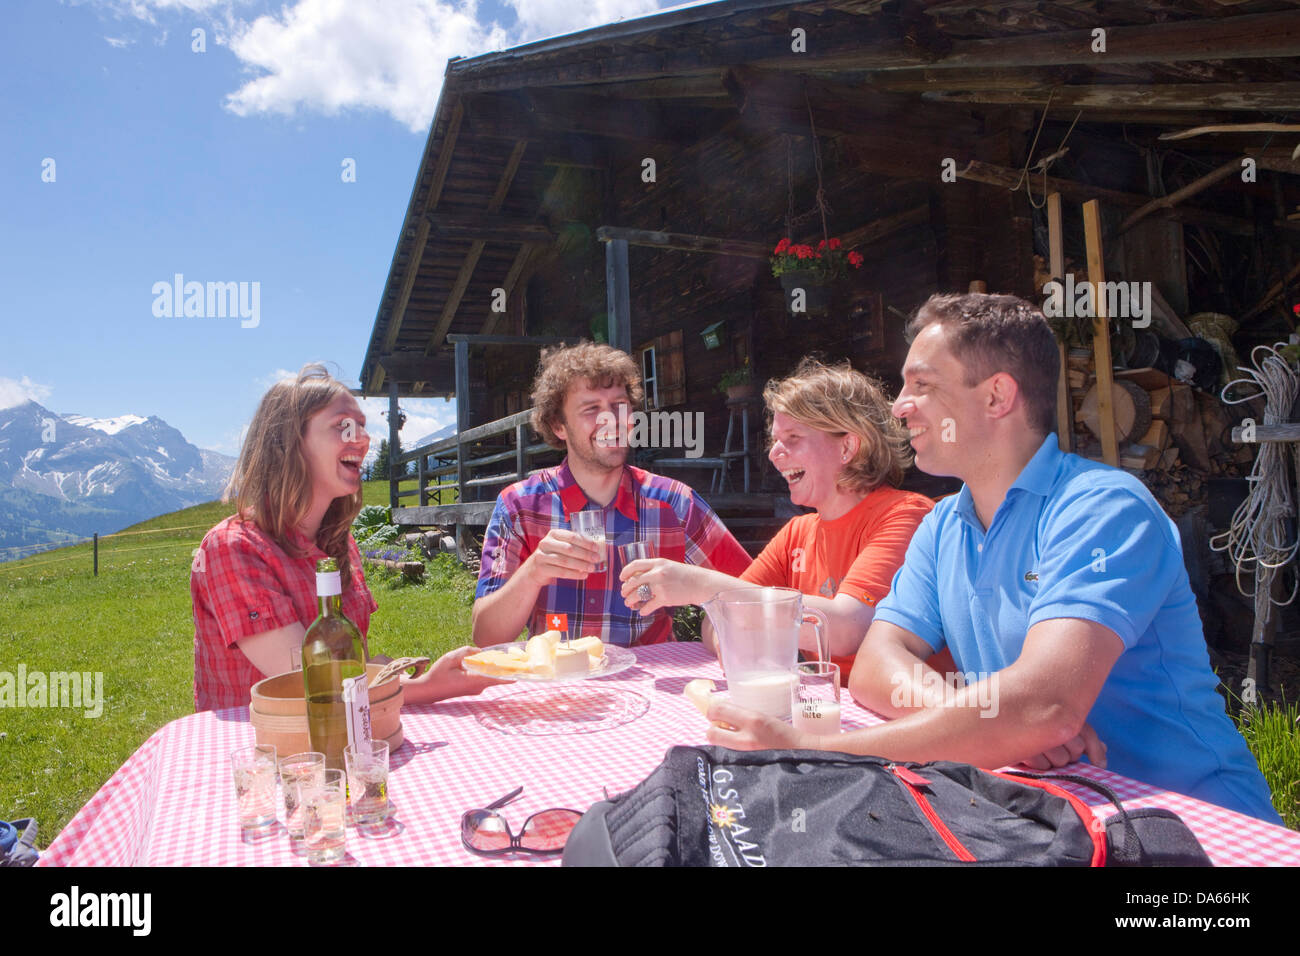 Traveller, alpine hut, canton, Bern, mountain, mountains, couple, Couples, Gstaad, summer sport, footpath, walking, - Stock Image